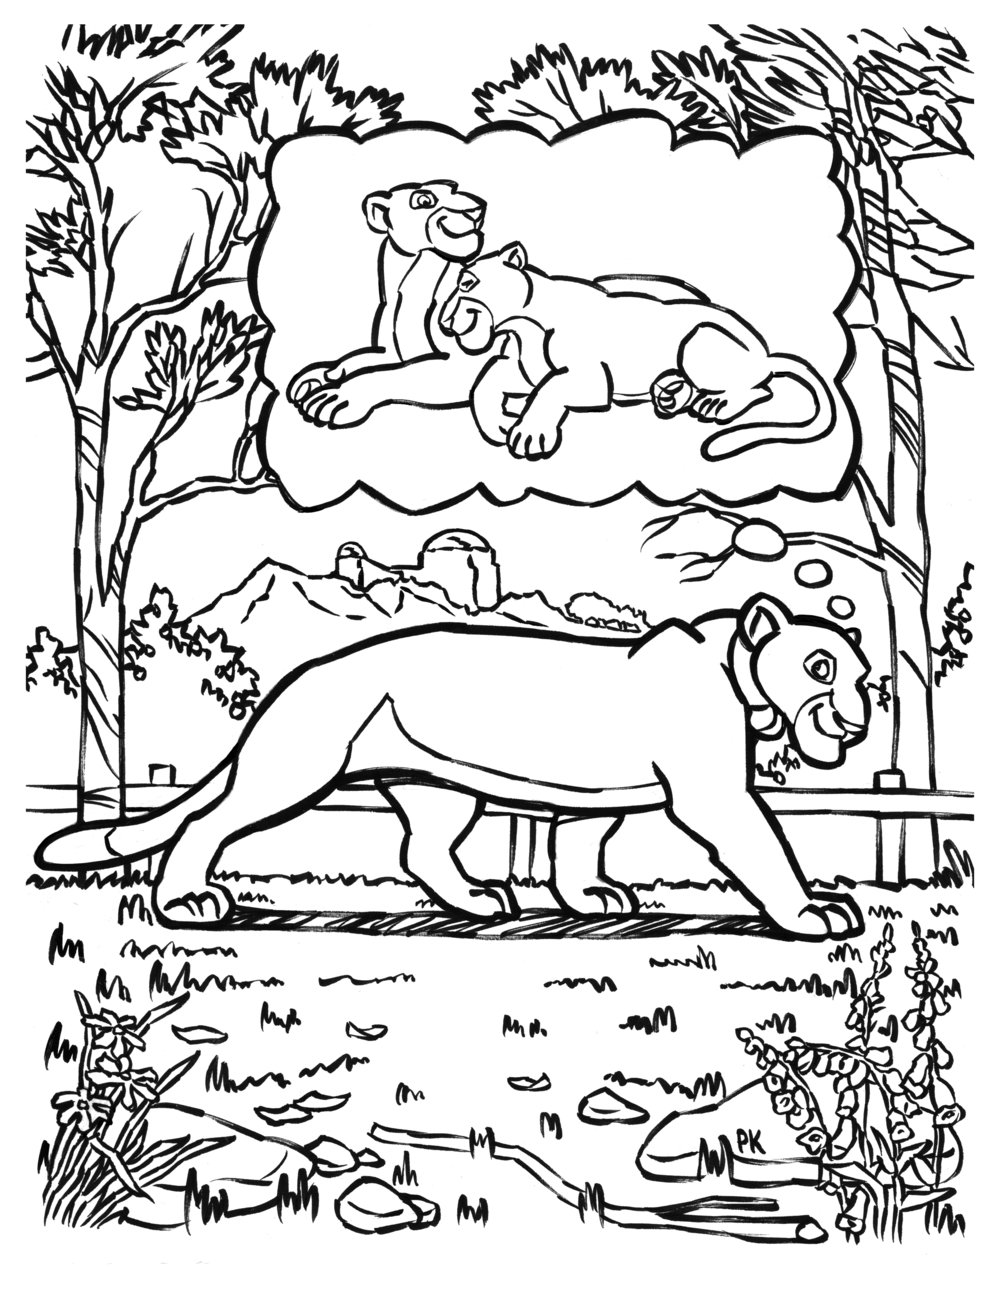 P-22 Coloring Book Page - Brushpen- We Love P-SS Coloring Book - Narrated Objects